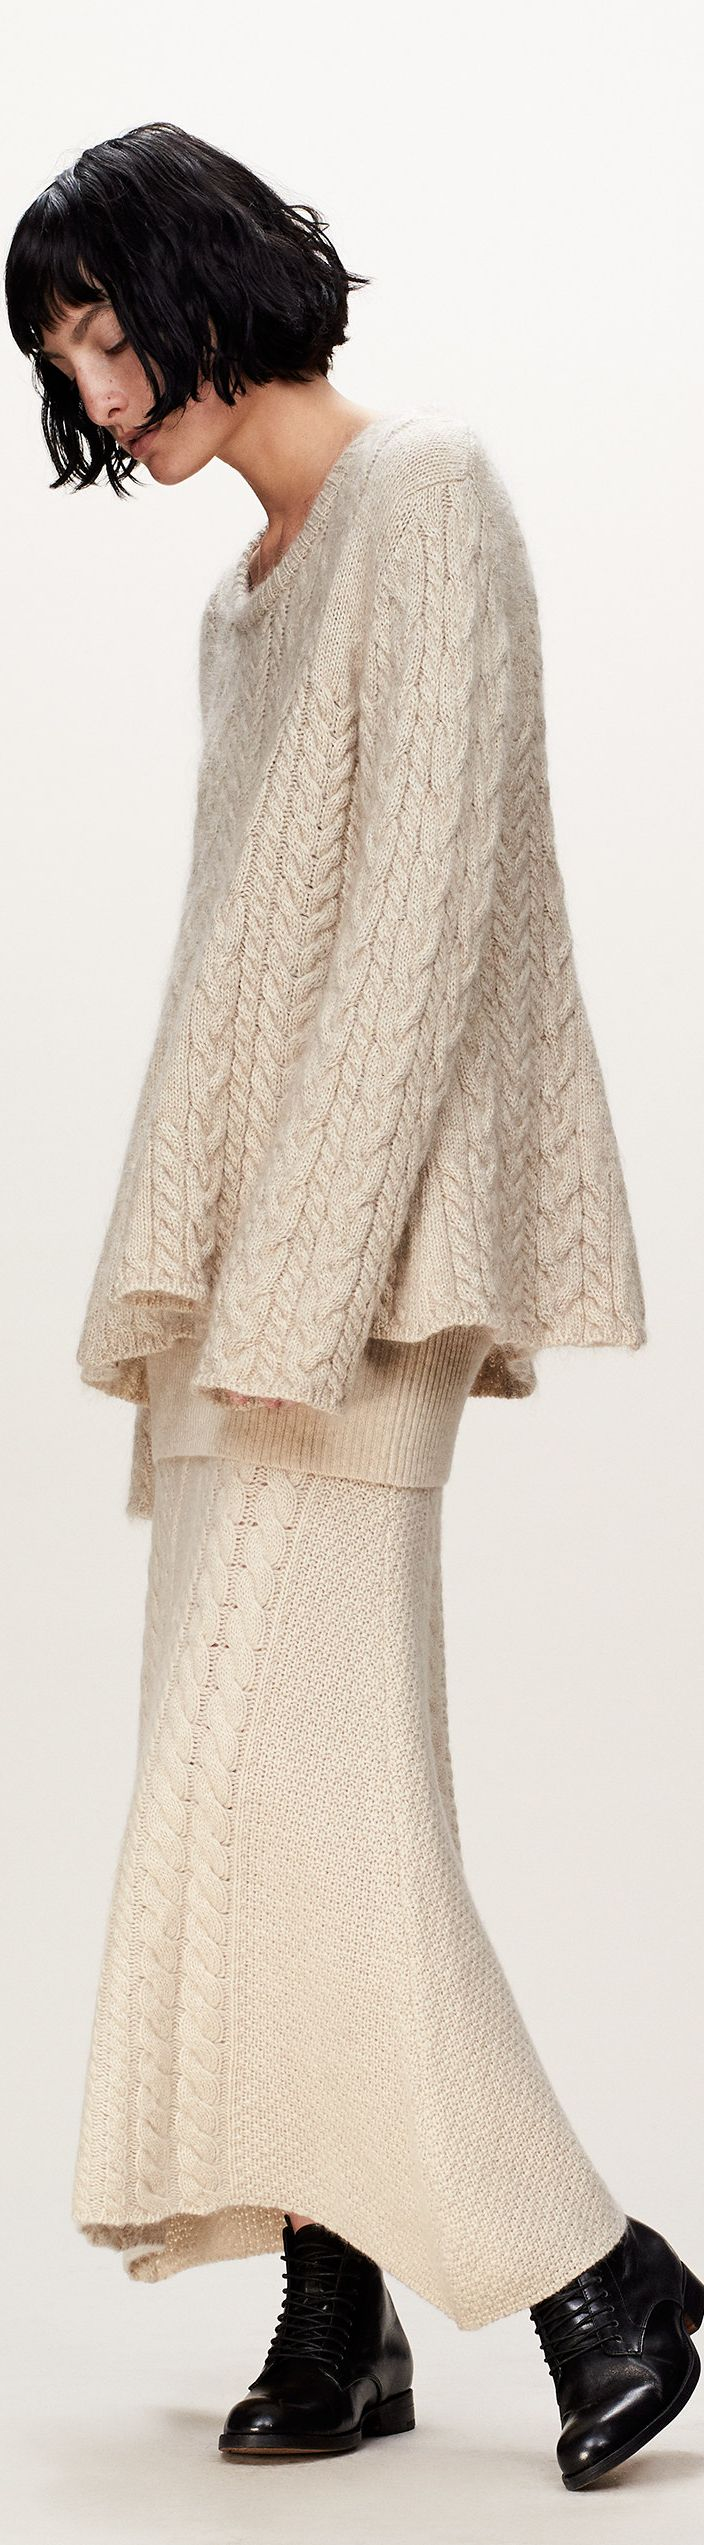 white knit sweater, skirt women fashion outfit clothing style apparel @roressclothes closet ideas